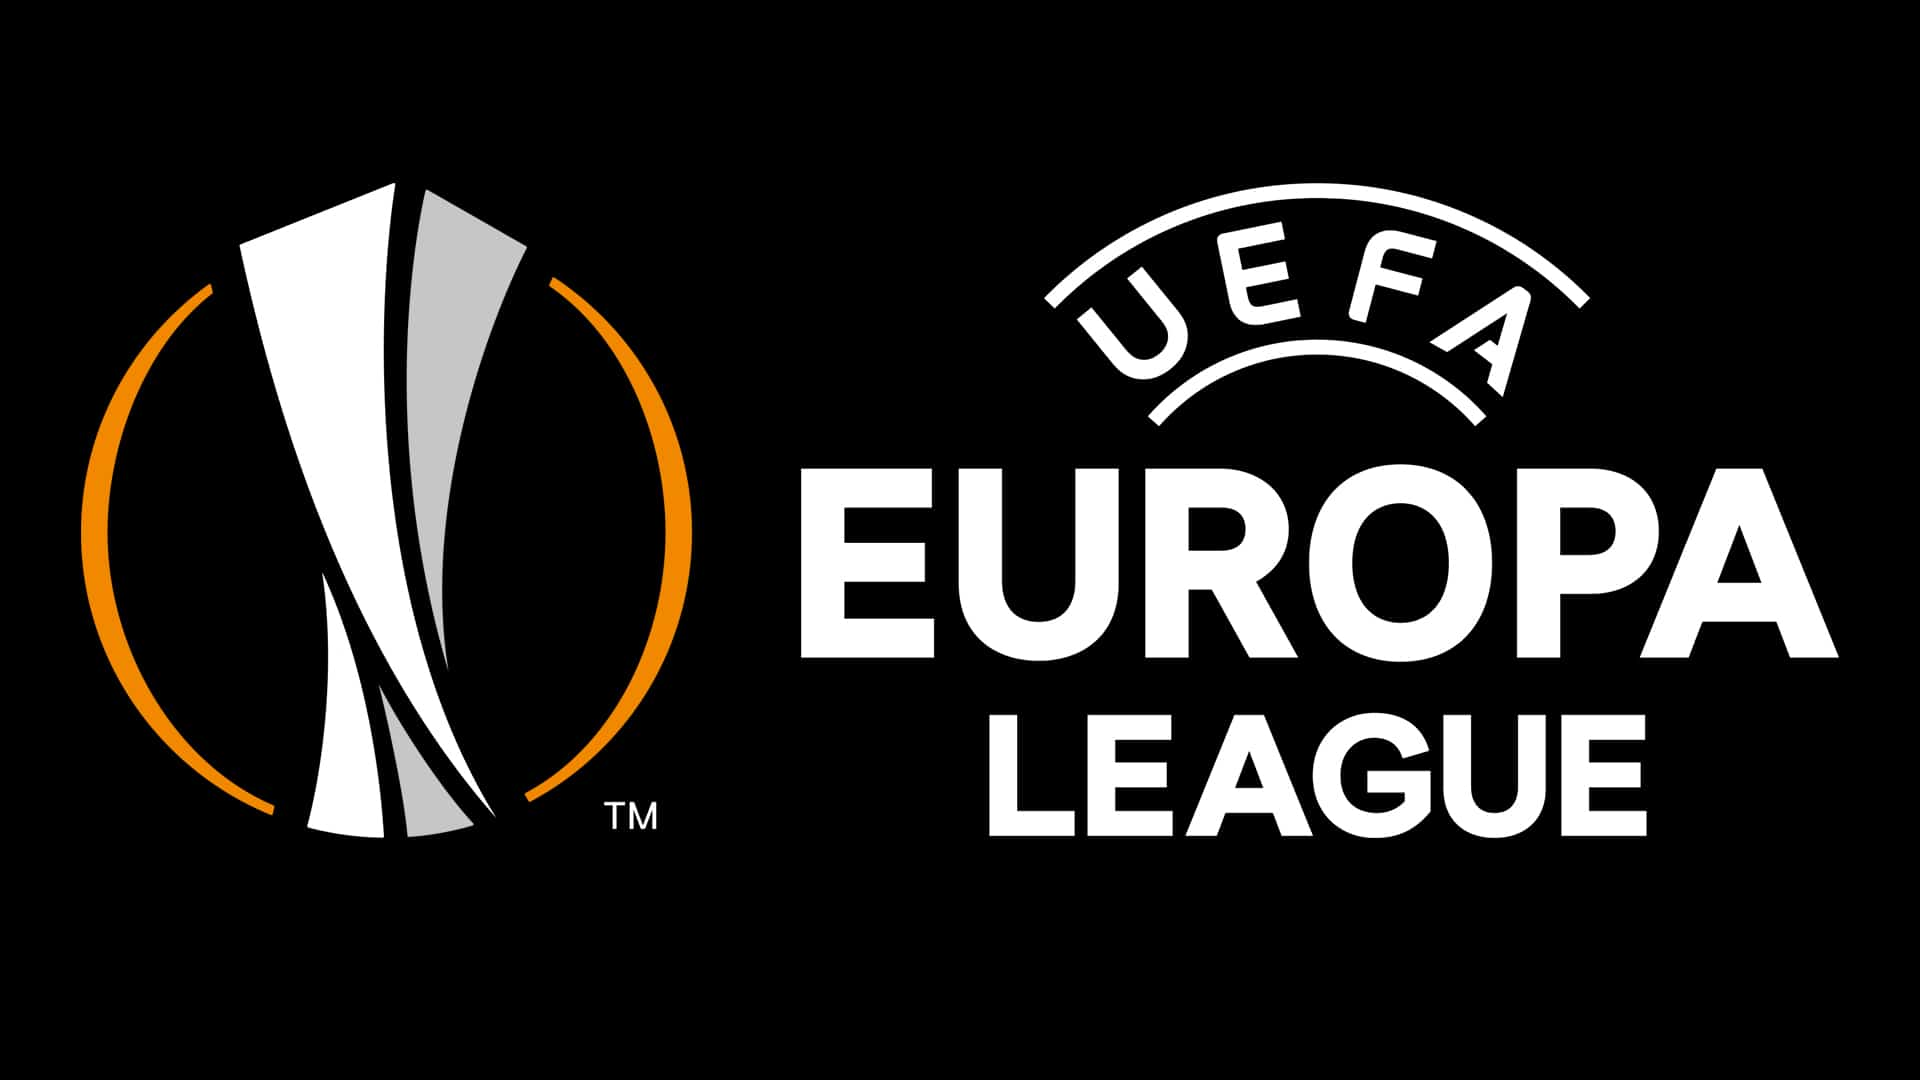 UEFA Europa League: Round of 32 match report 2021.